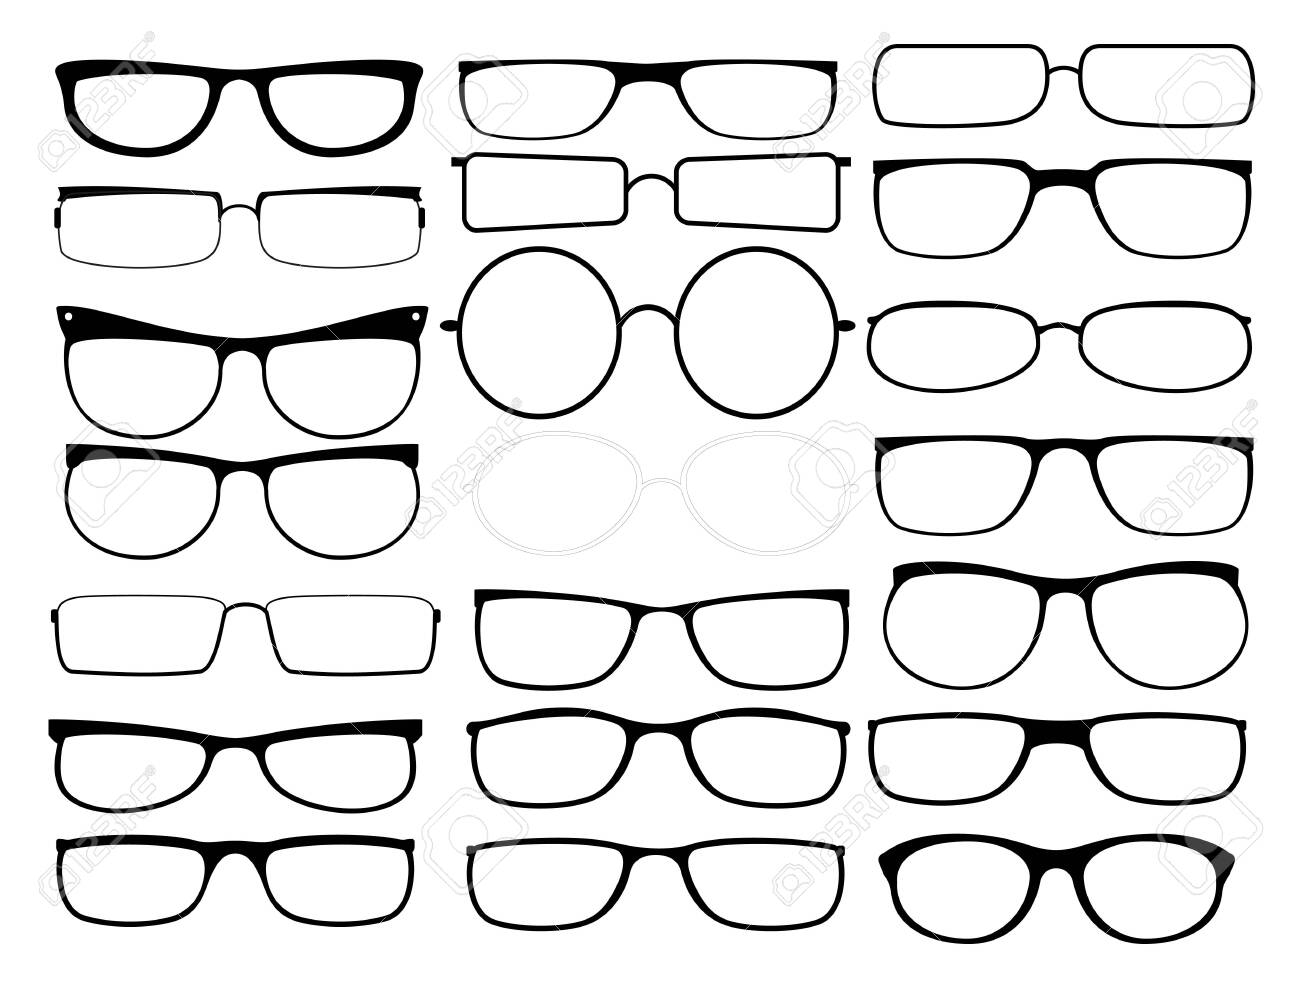 Vector glasses frames. Black rim glasses, sunglass spectacles silhouettes, eyeglasses frame fashion model for man and woman - 130258940